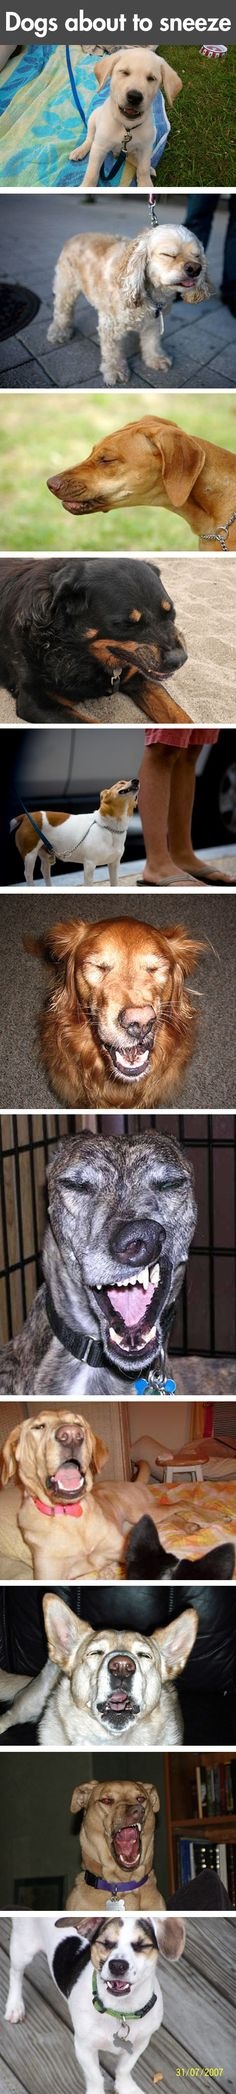 Dogs about to sneeze… ahahahahaaha